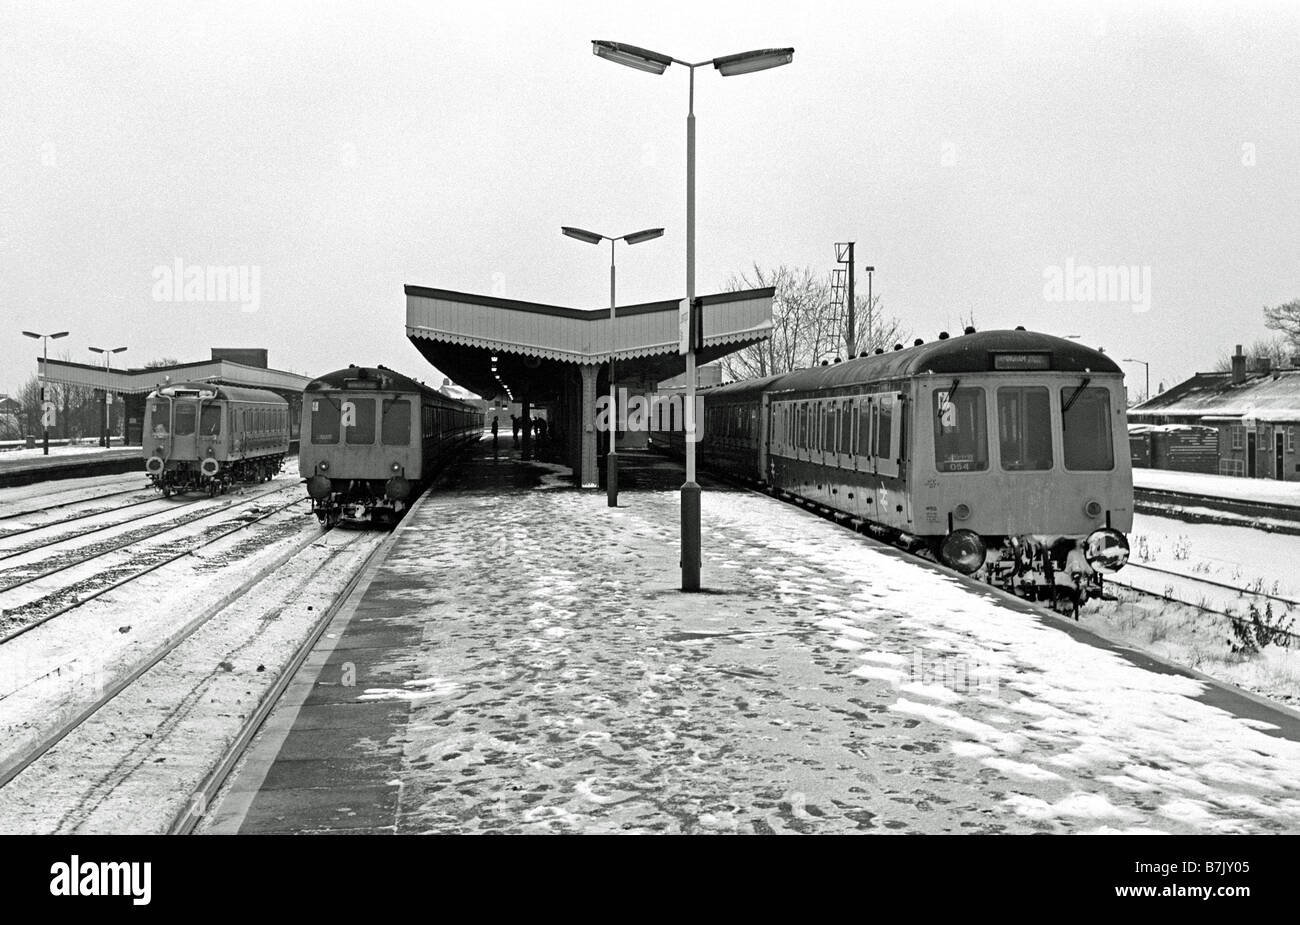 Trains in snow in 1987, UK - Stock Image